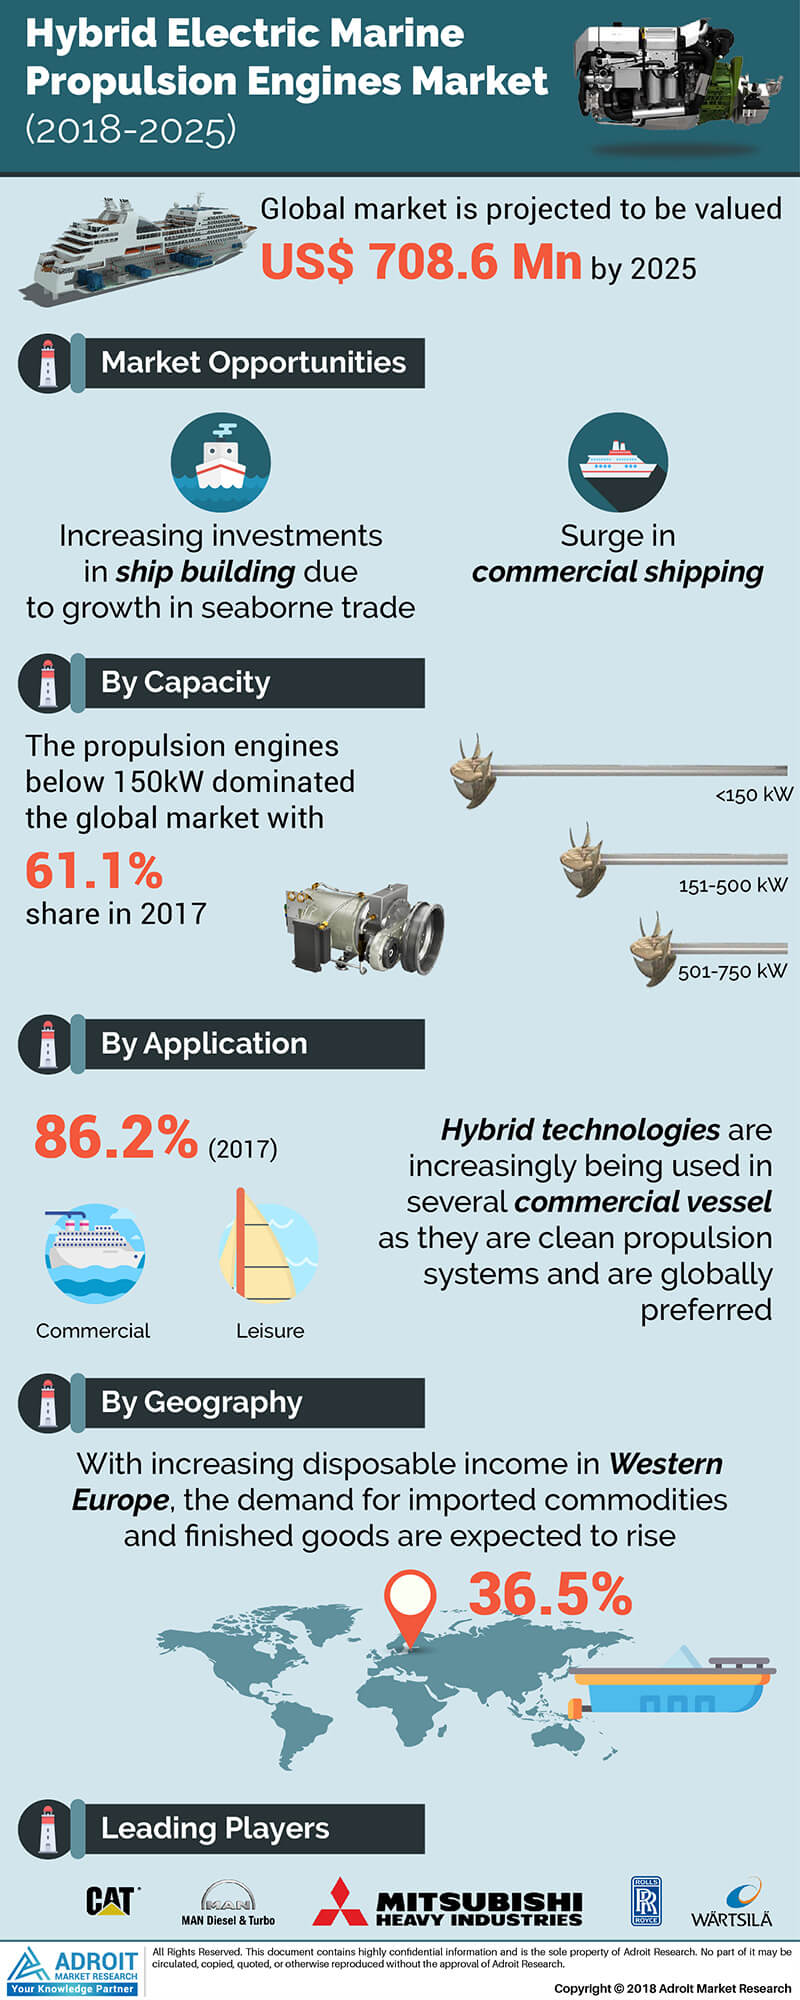 Hybrid Electric Marine Propulsion Engine Market Size by Capacity, Application, by Region and Forecast 2018 to 2025